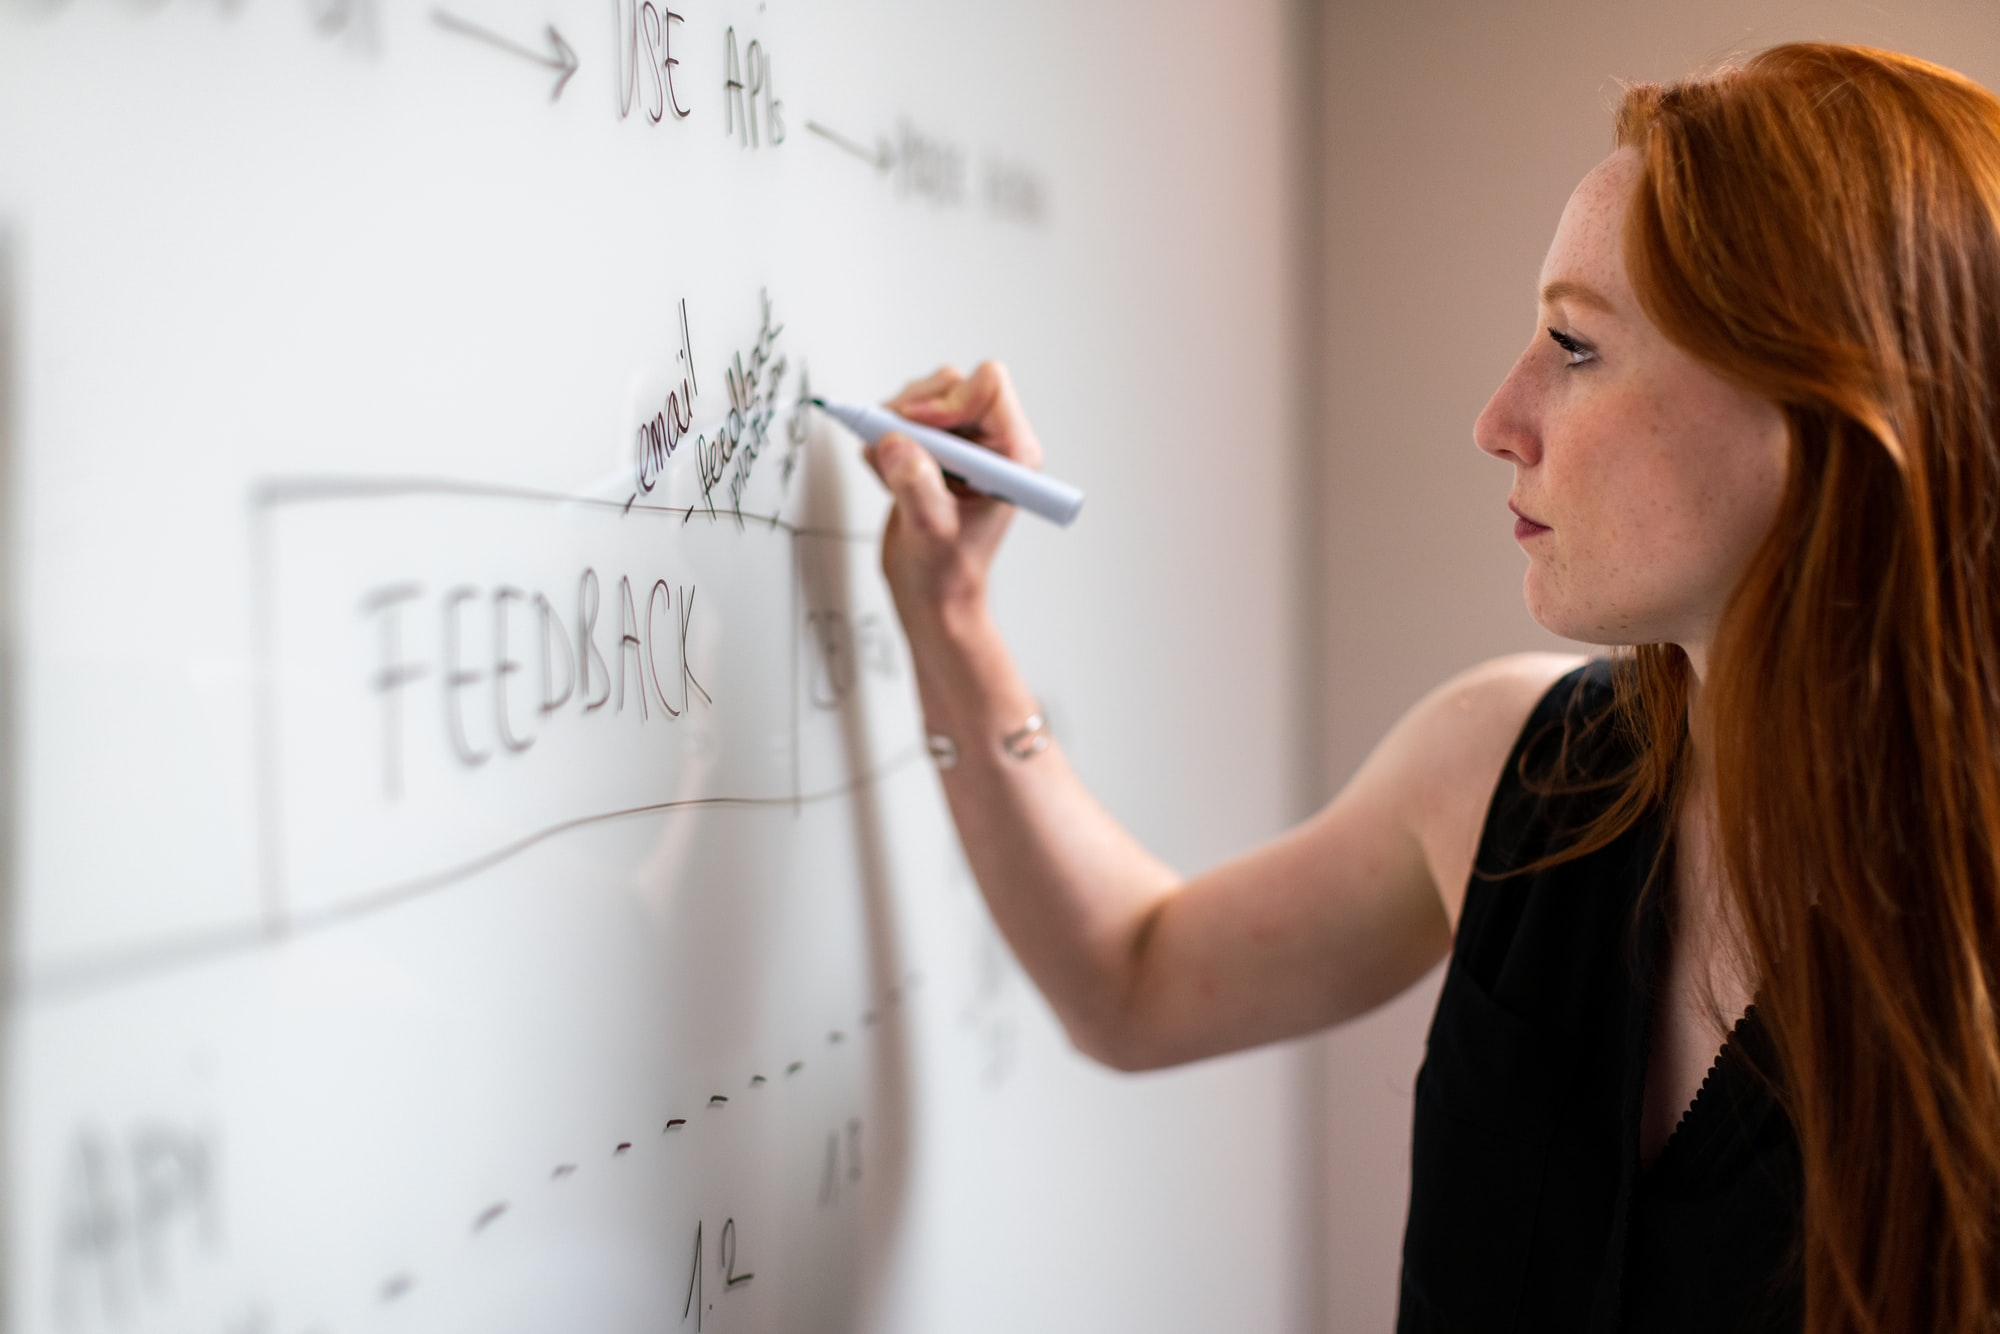 Young woman writing on whiteboard, outlinging software development user feedback loops.